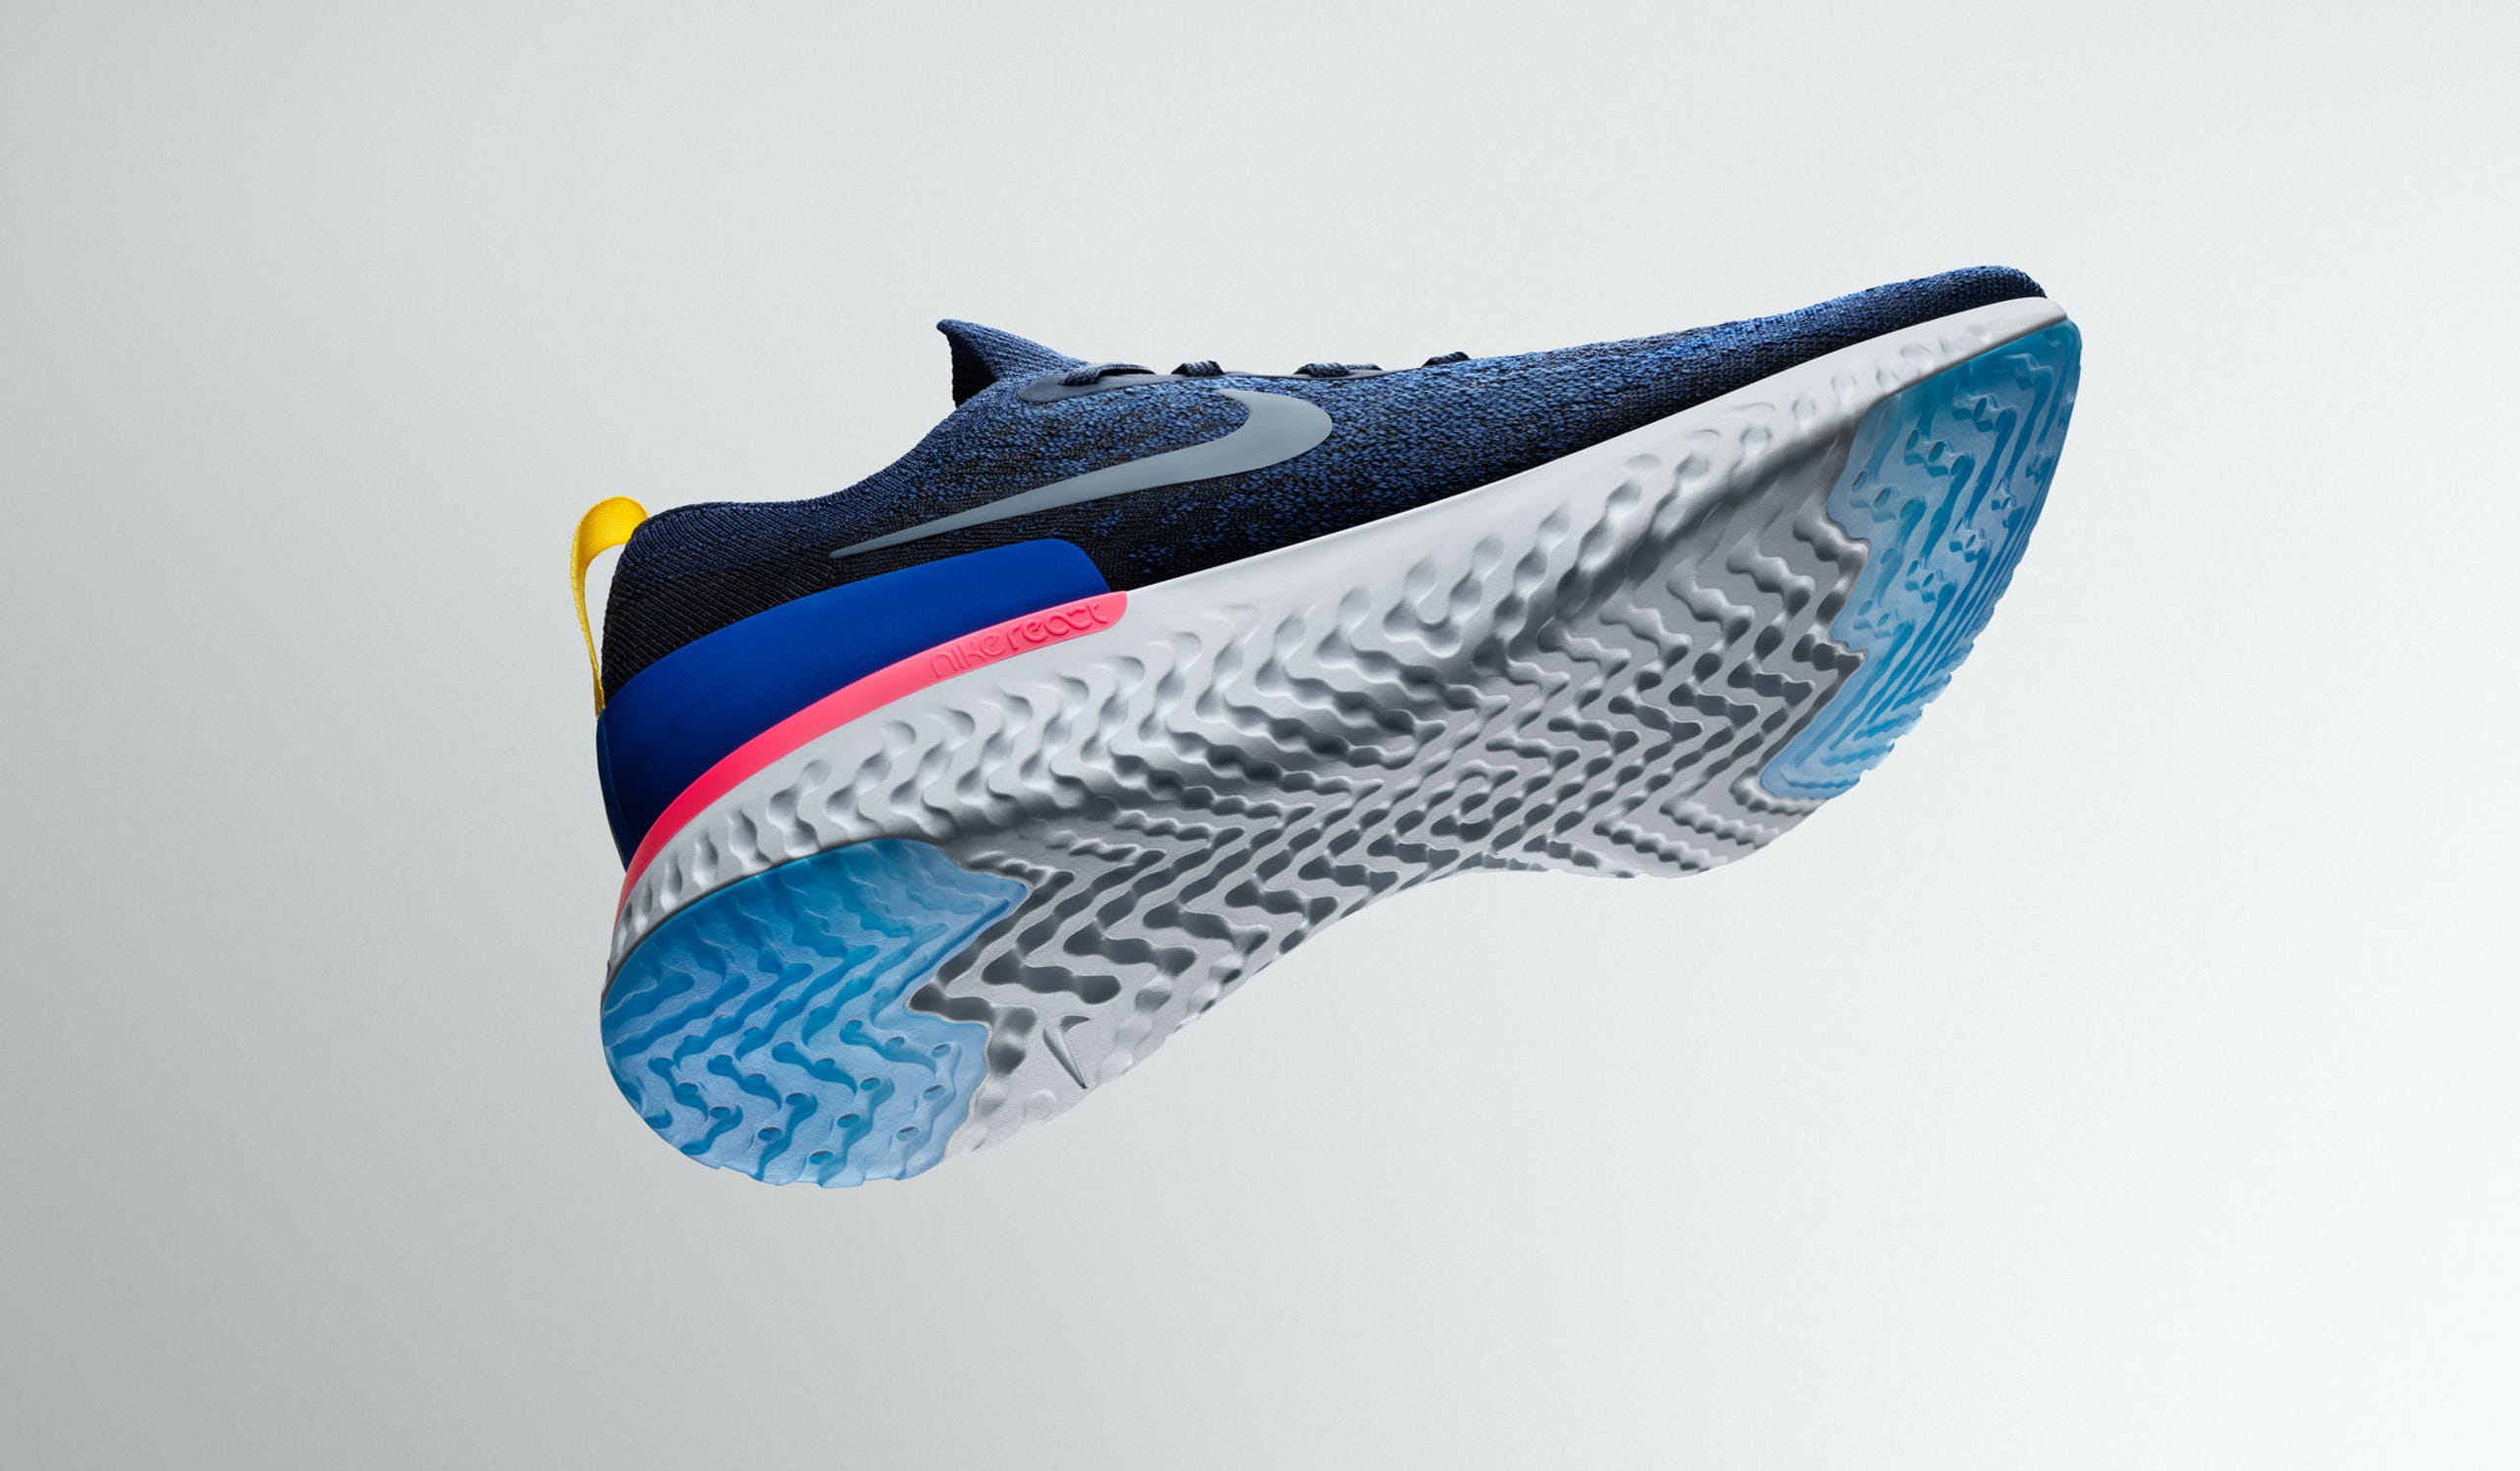 3c7d4e495a23 Nike unveils the new Epic React running shoe